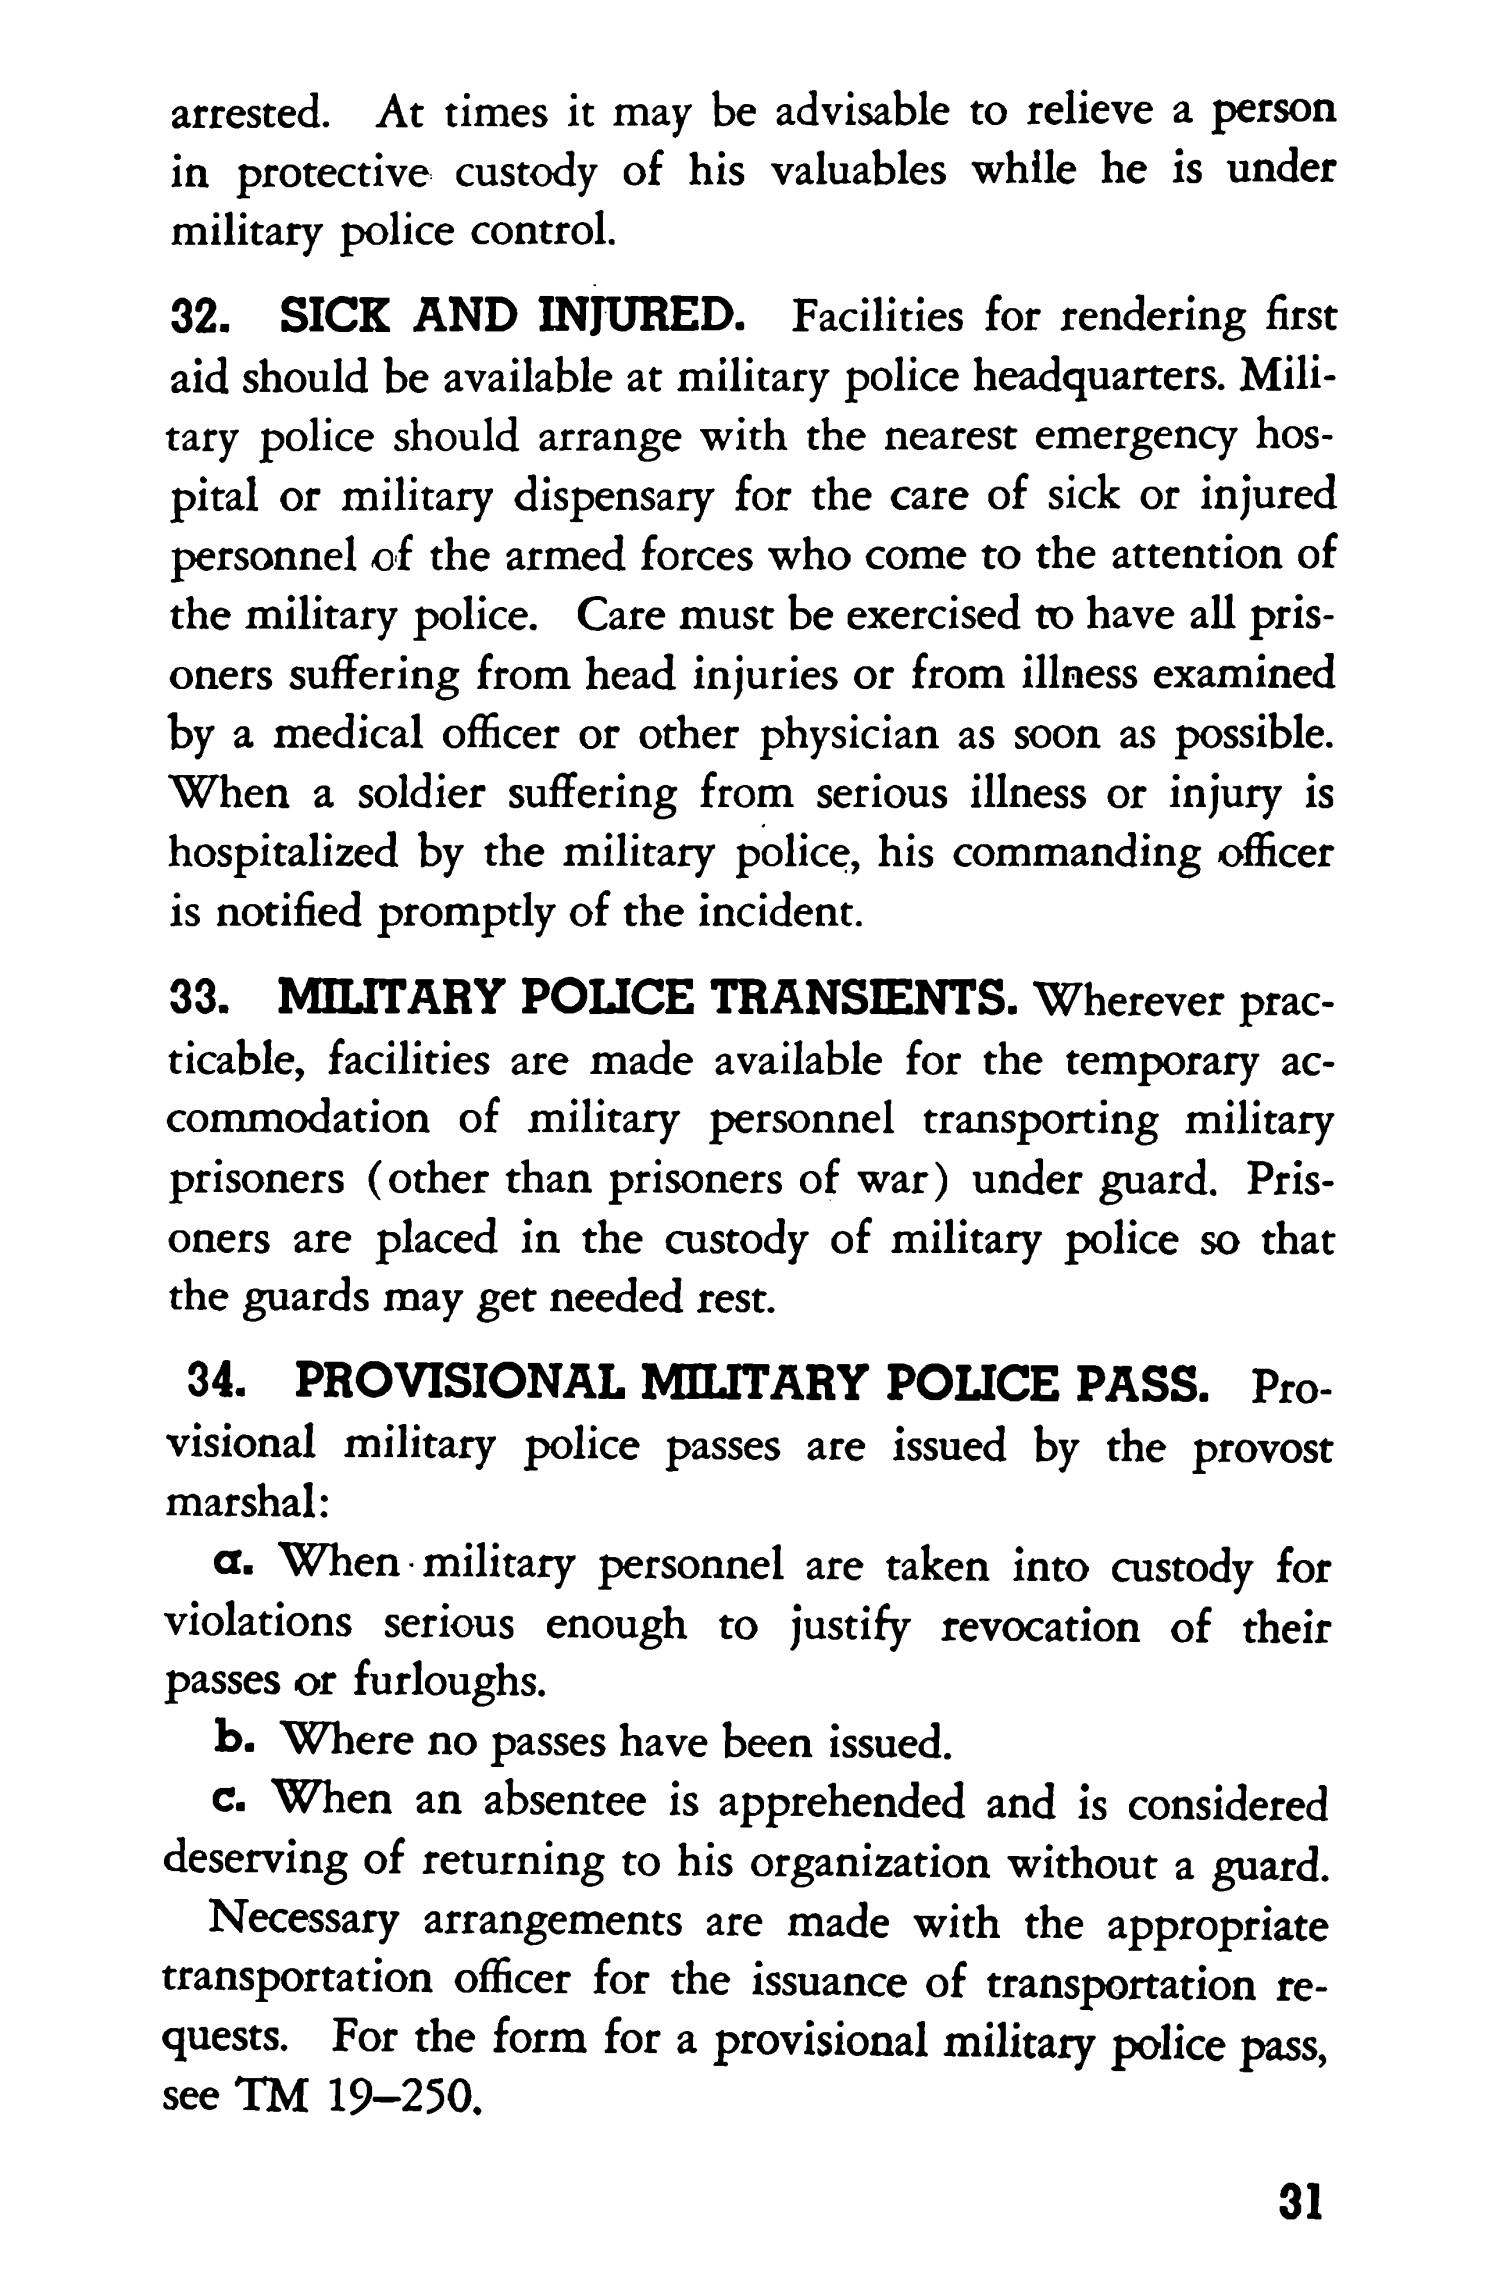 Military police in towns and cities                                                                                                      31